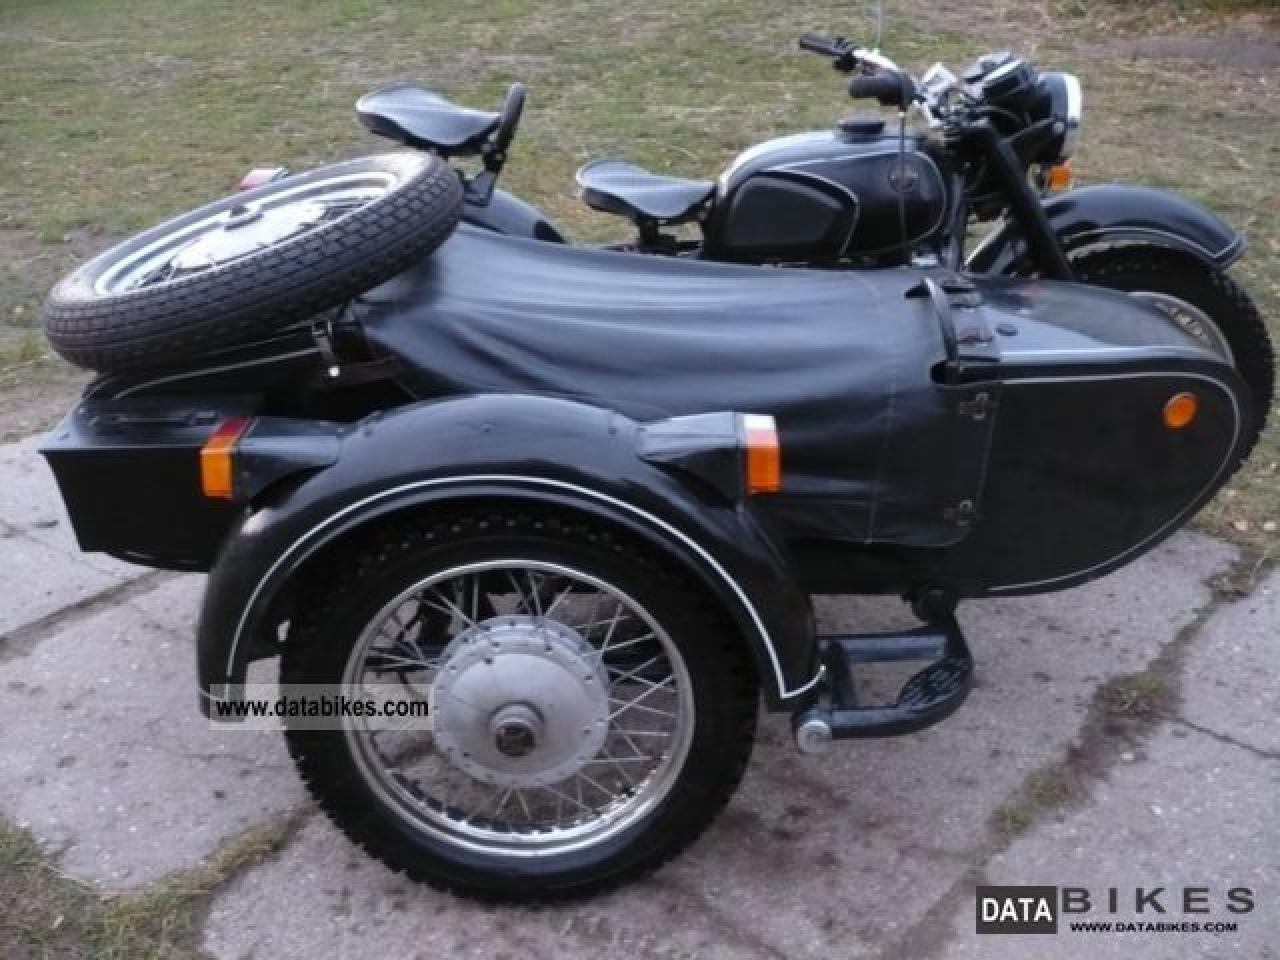 Dnepr MT 10 with sidecar 1977 images #71408